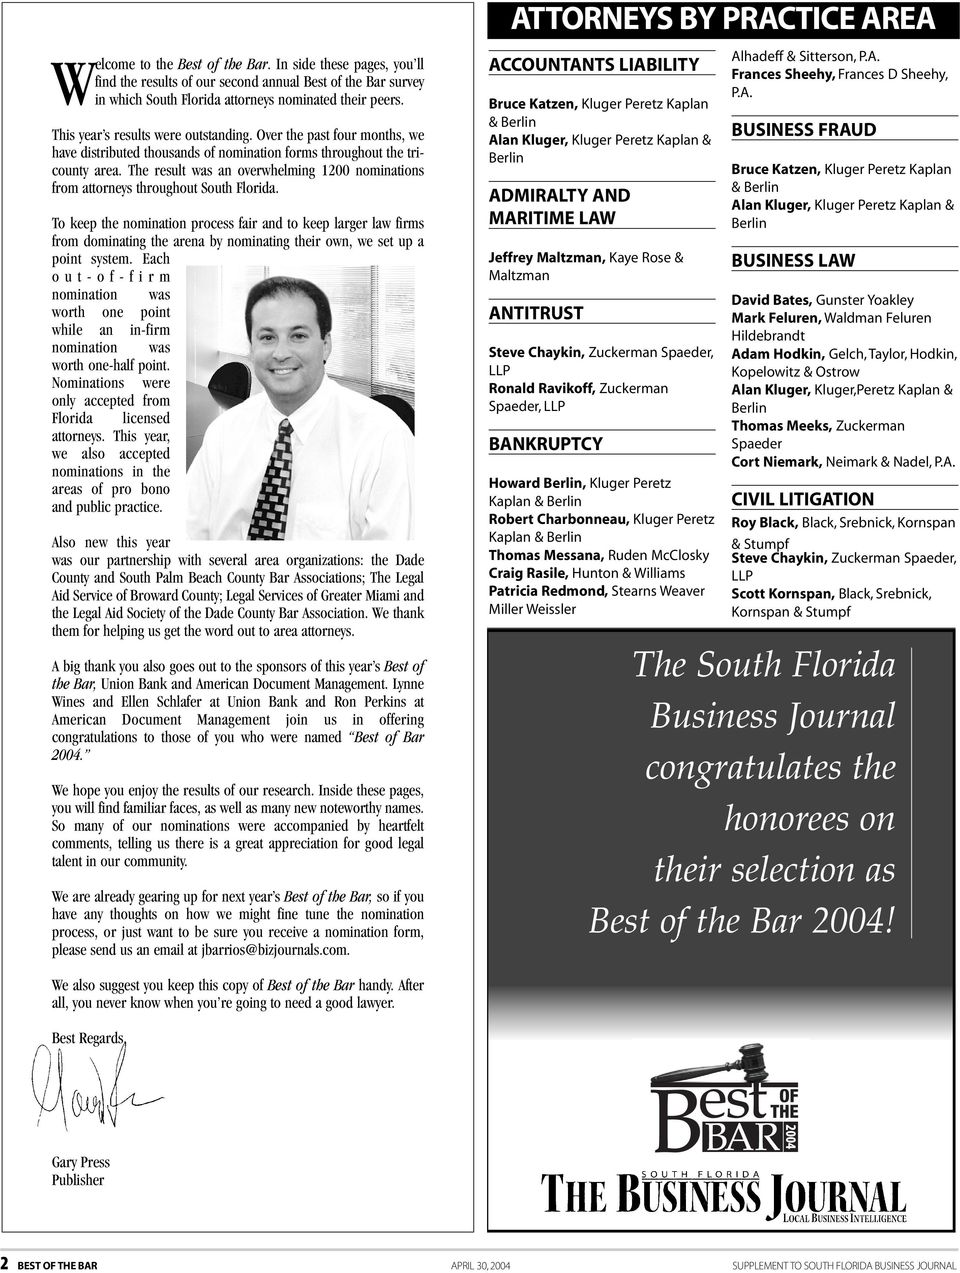 The result was an overwhelming 1200 nominations from attorneys throughout South Florida.